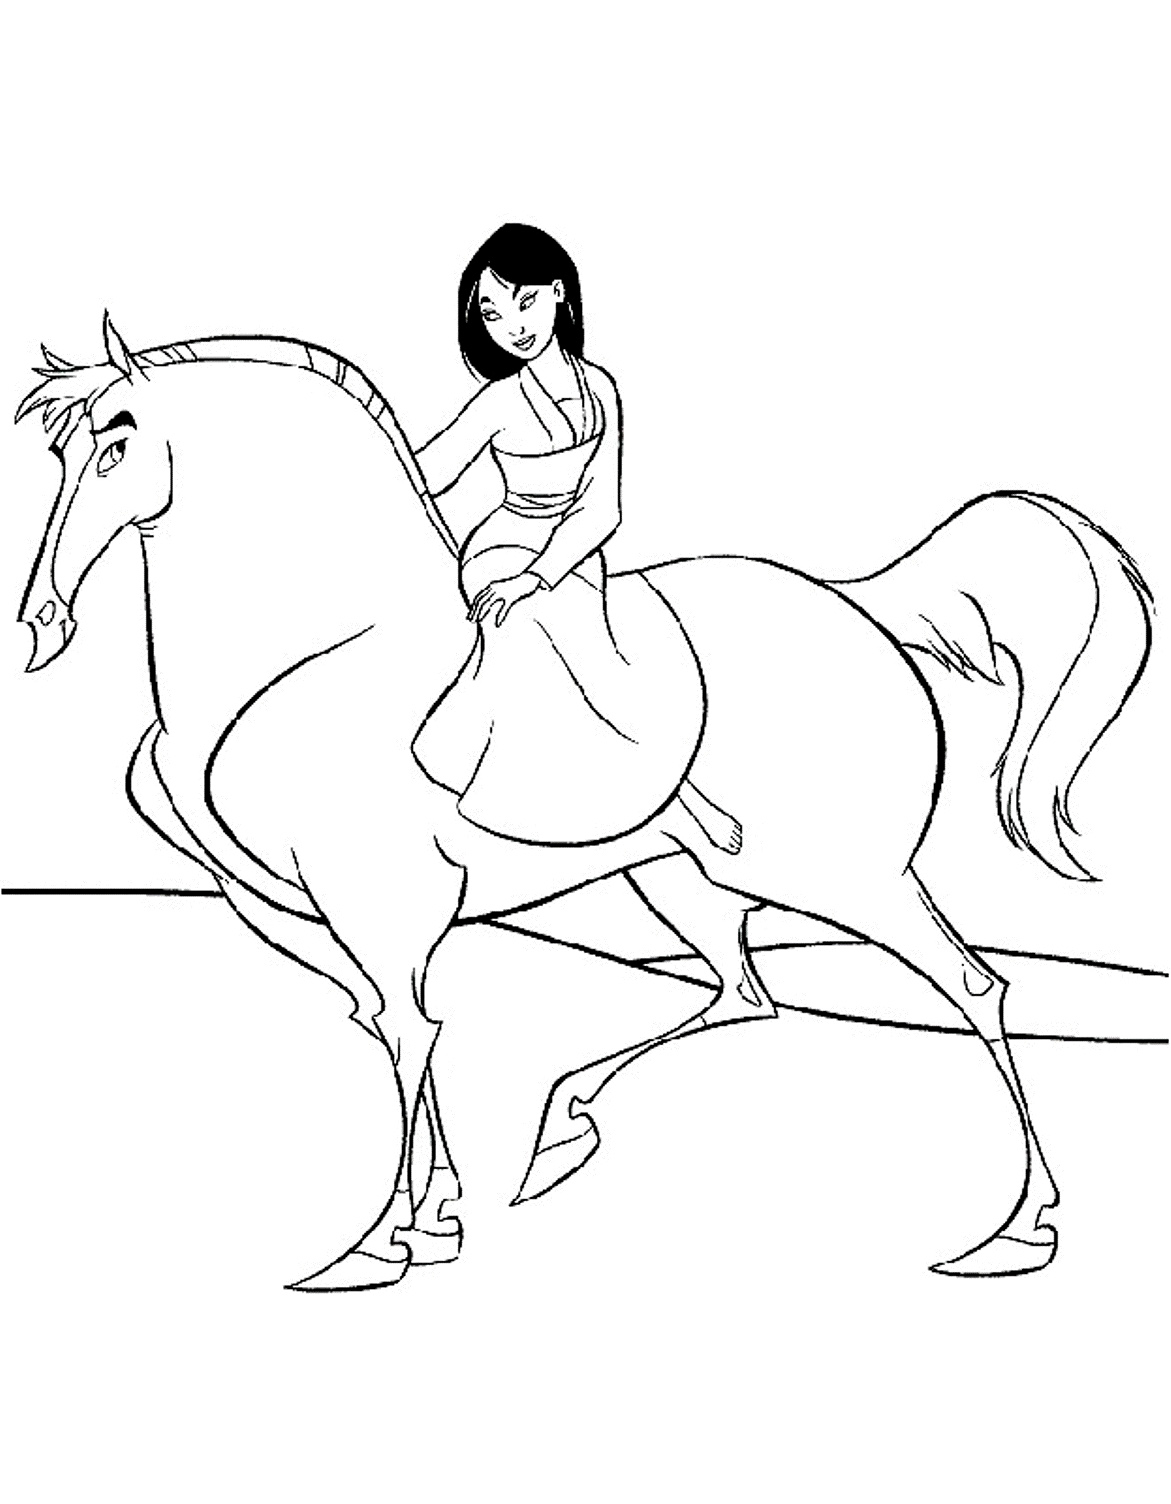 Baby Disney Princess Mulan Coloring Pages - Worksheet & Coloring Pages